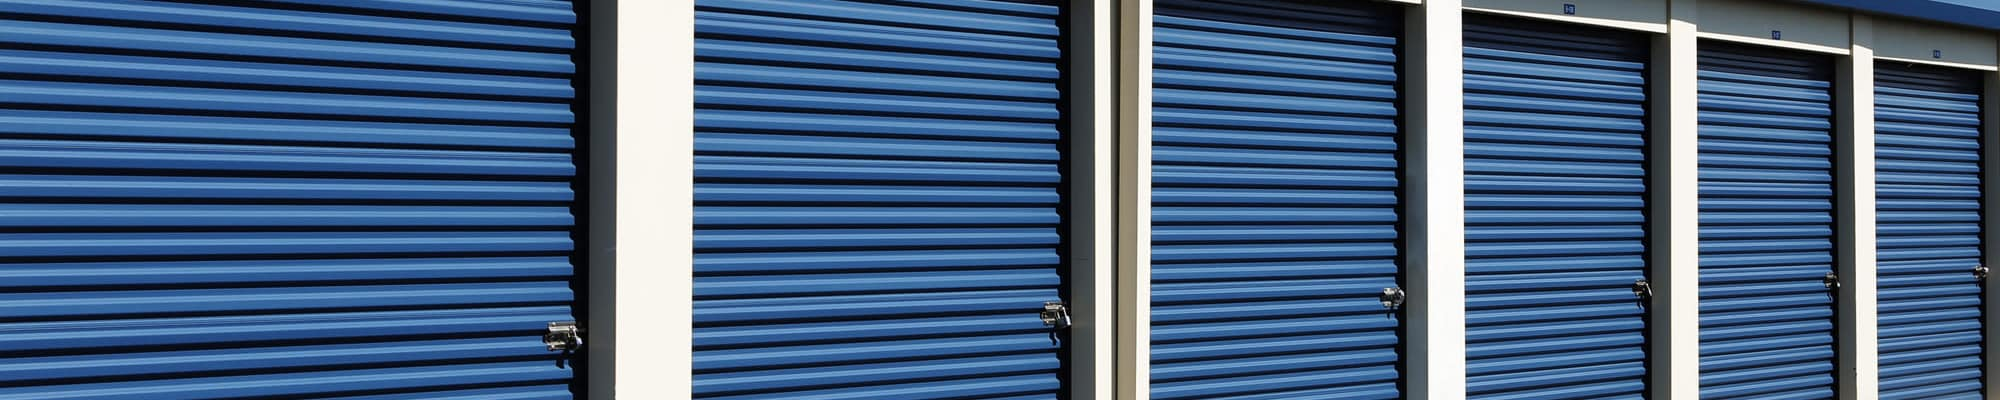 Self storage size guide at Midgard Self Storage in Bradenton, Florida